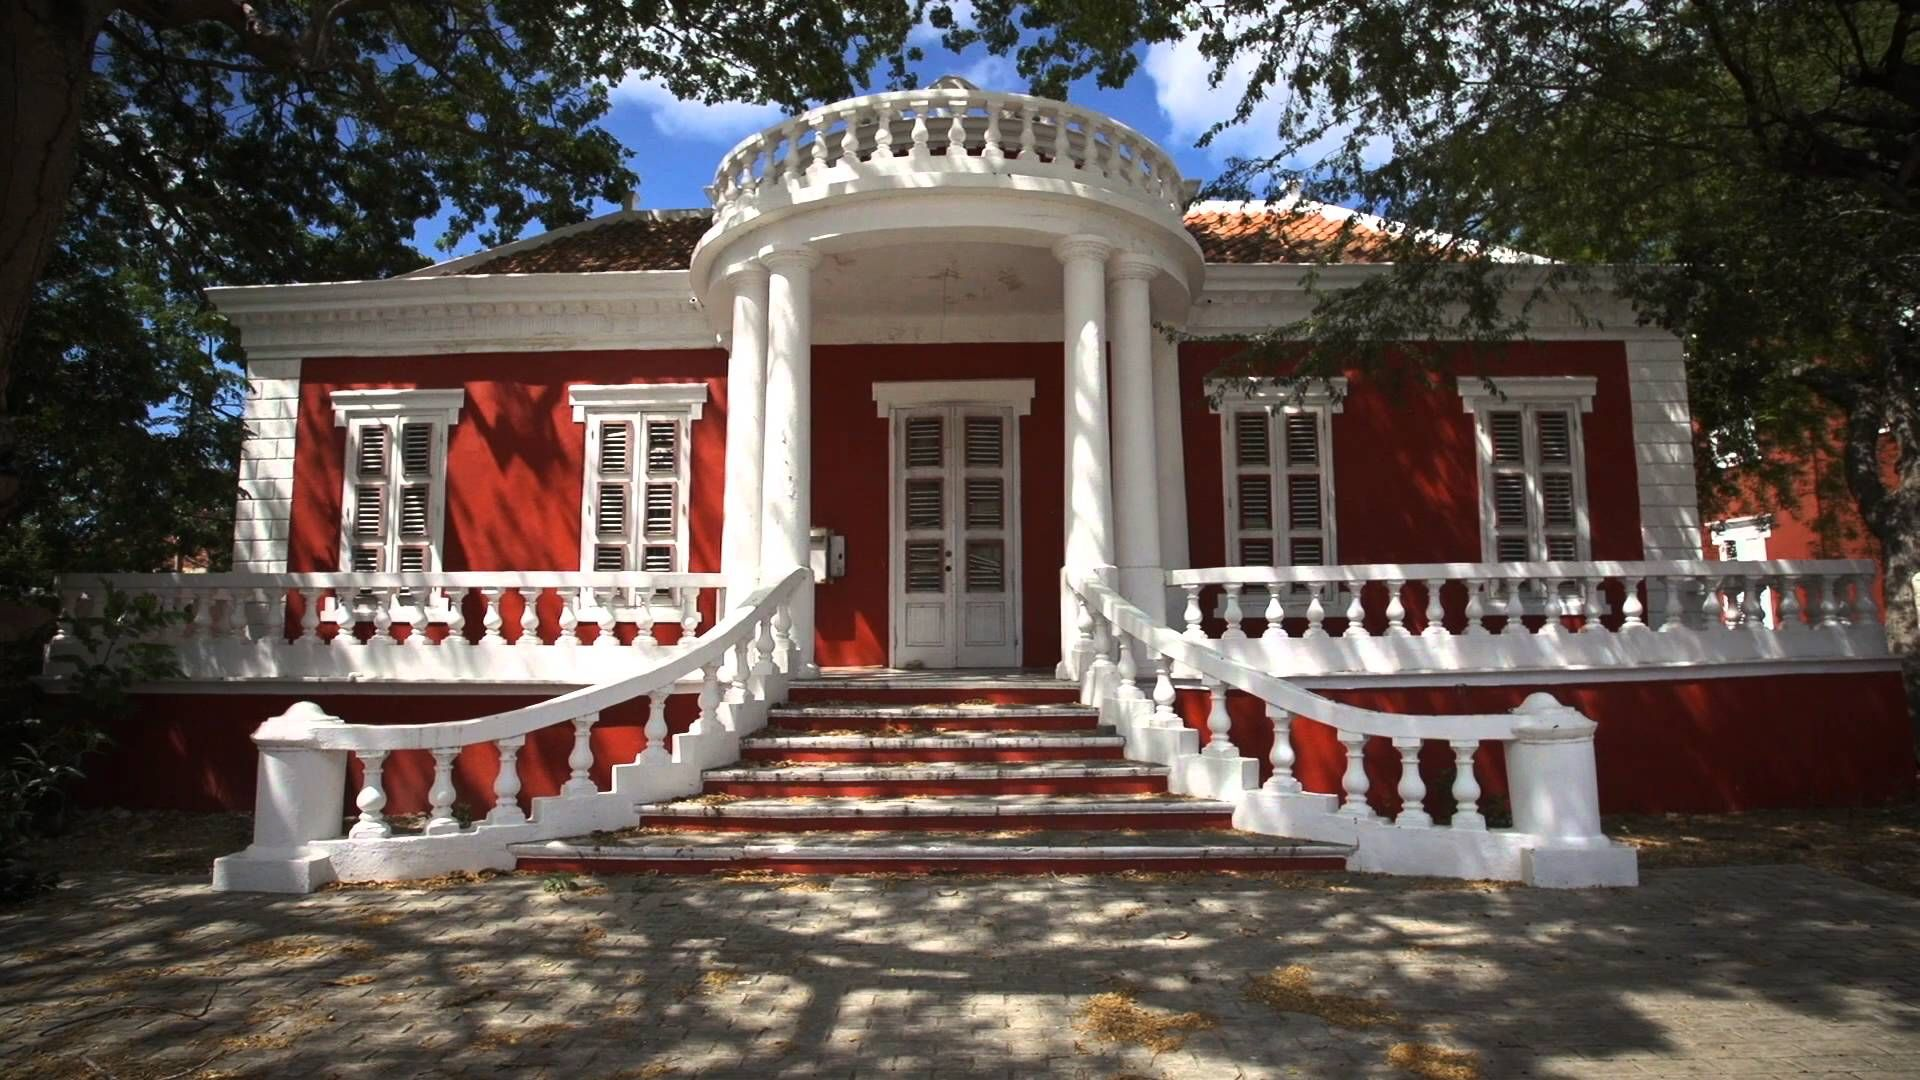 World Heritage City Willemstad Scharloo Curacao History Architecture Caribbean